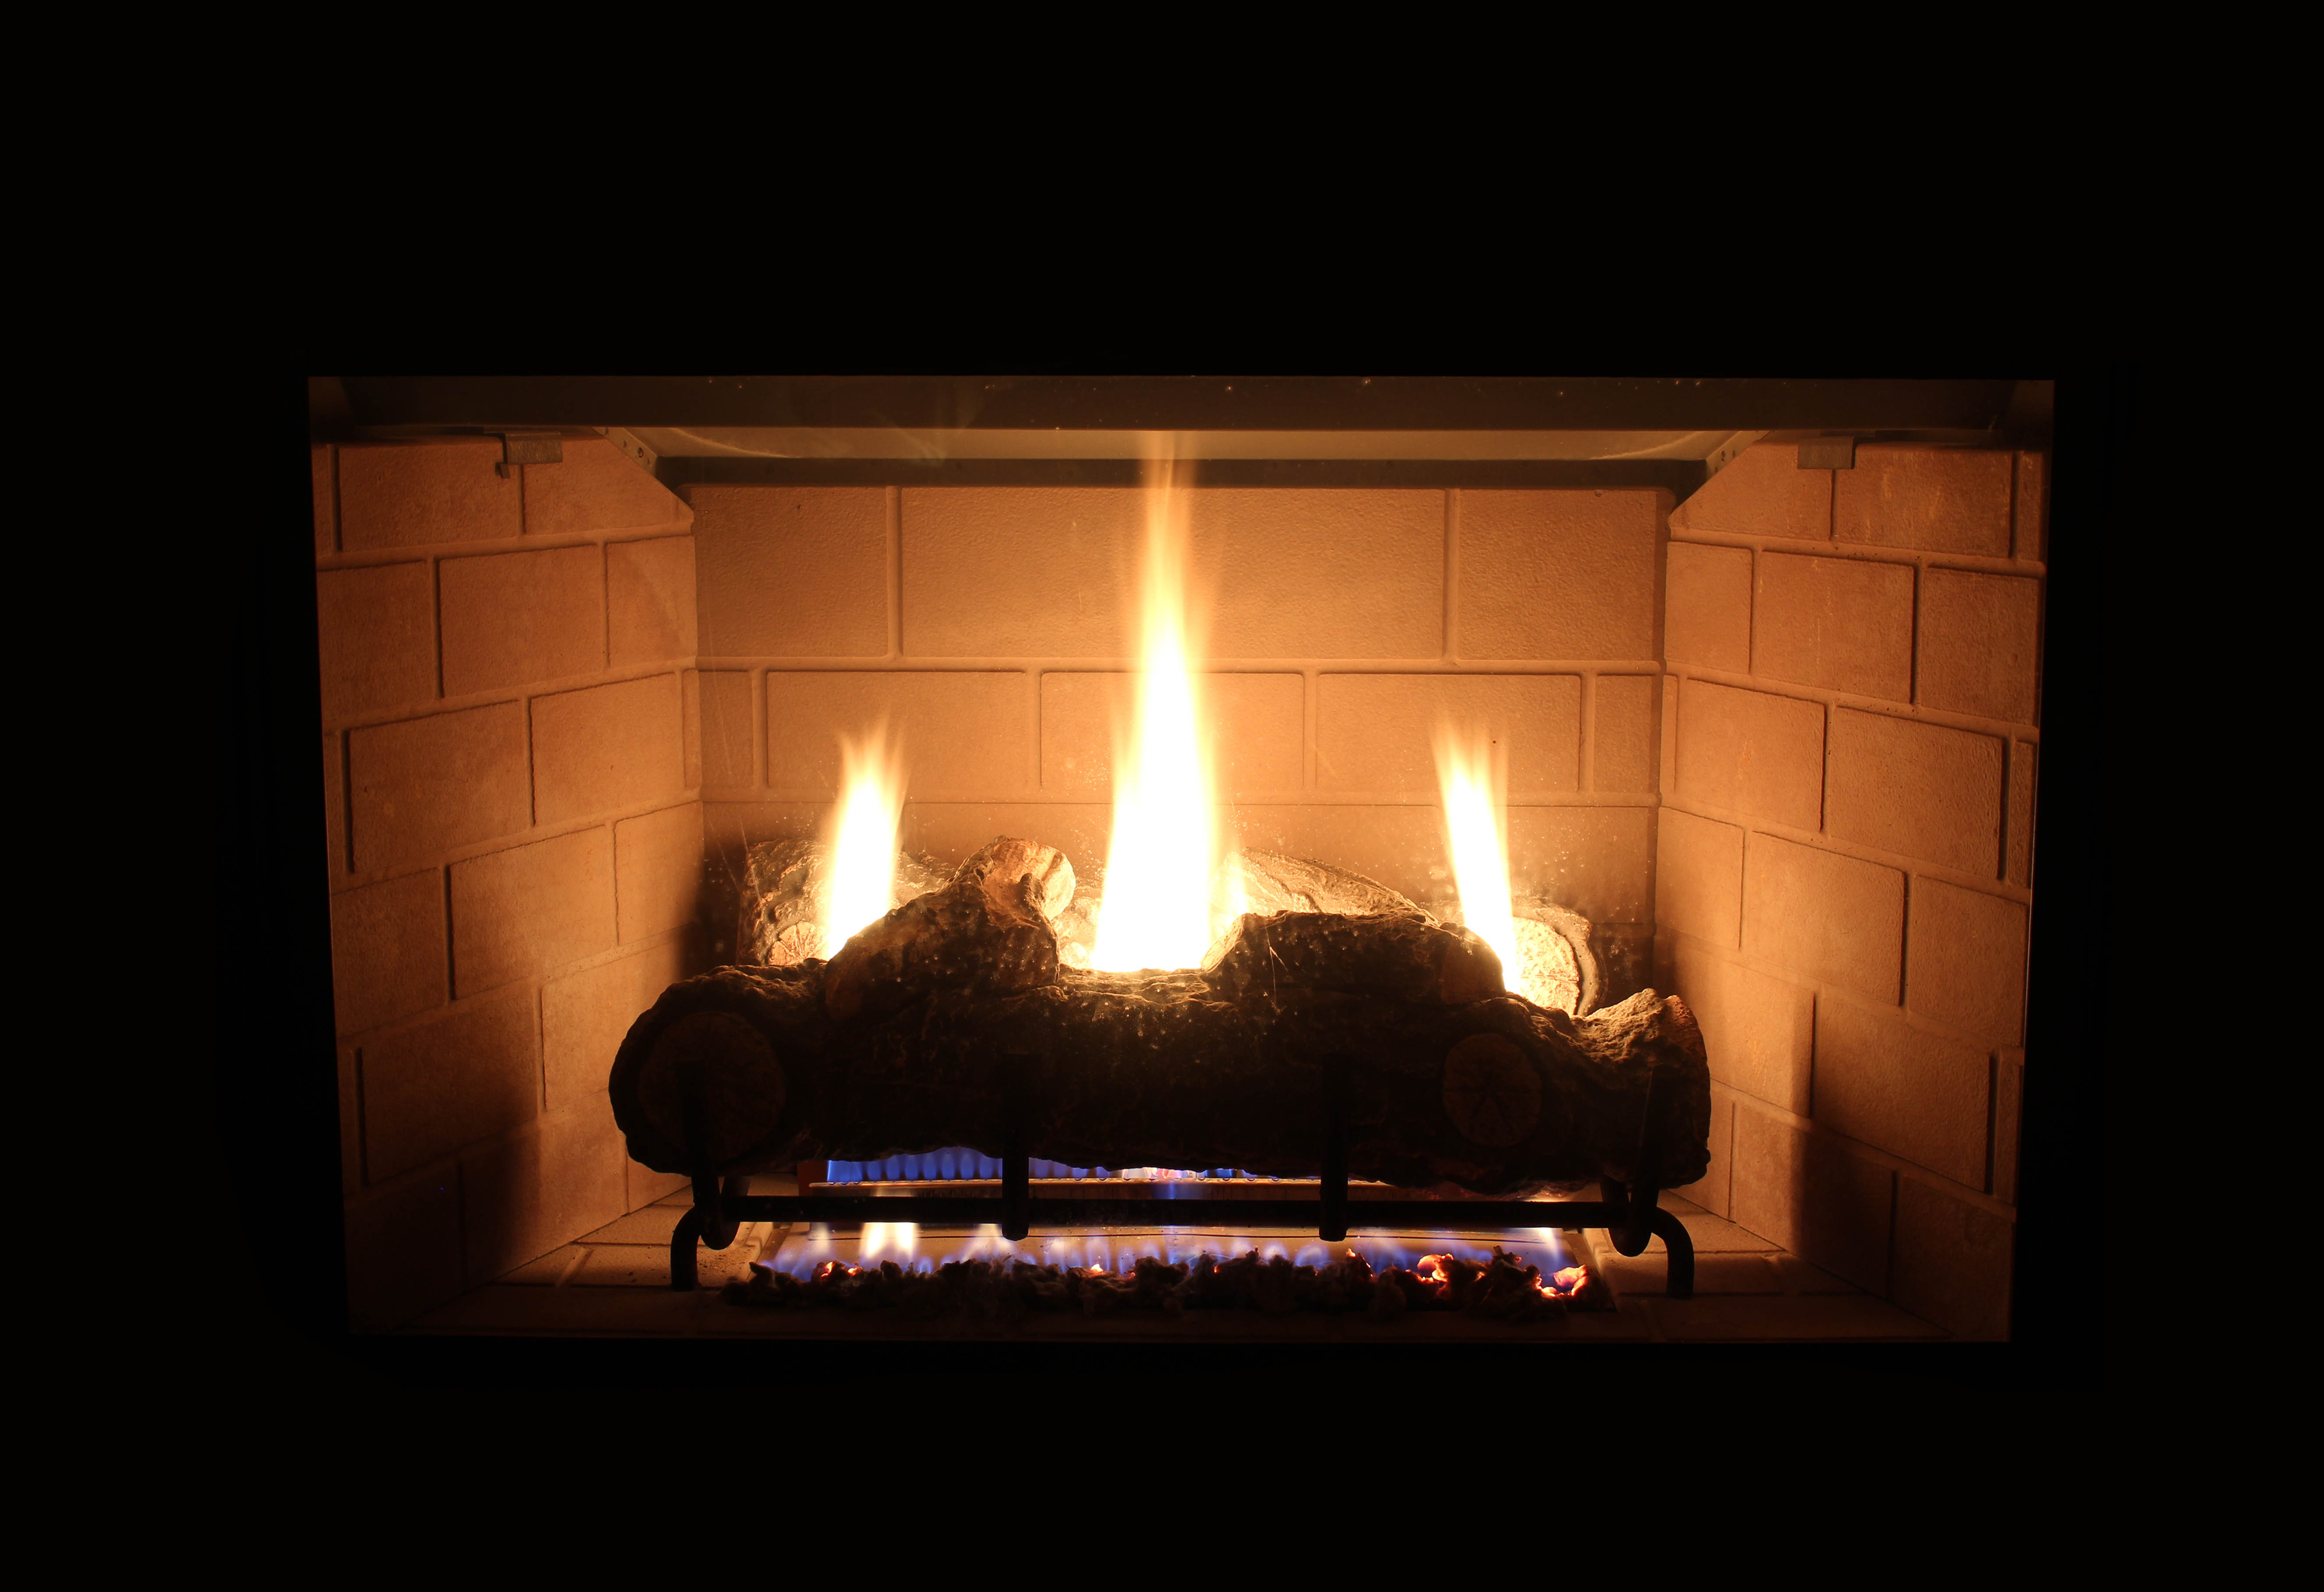 How To Light A Gas Fireplace Pilot Light Hunker